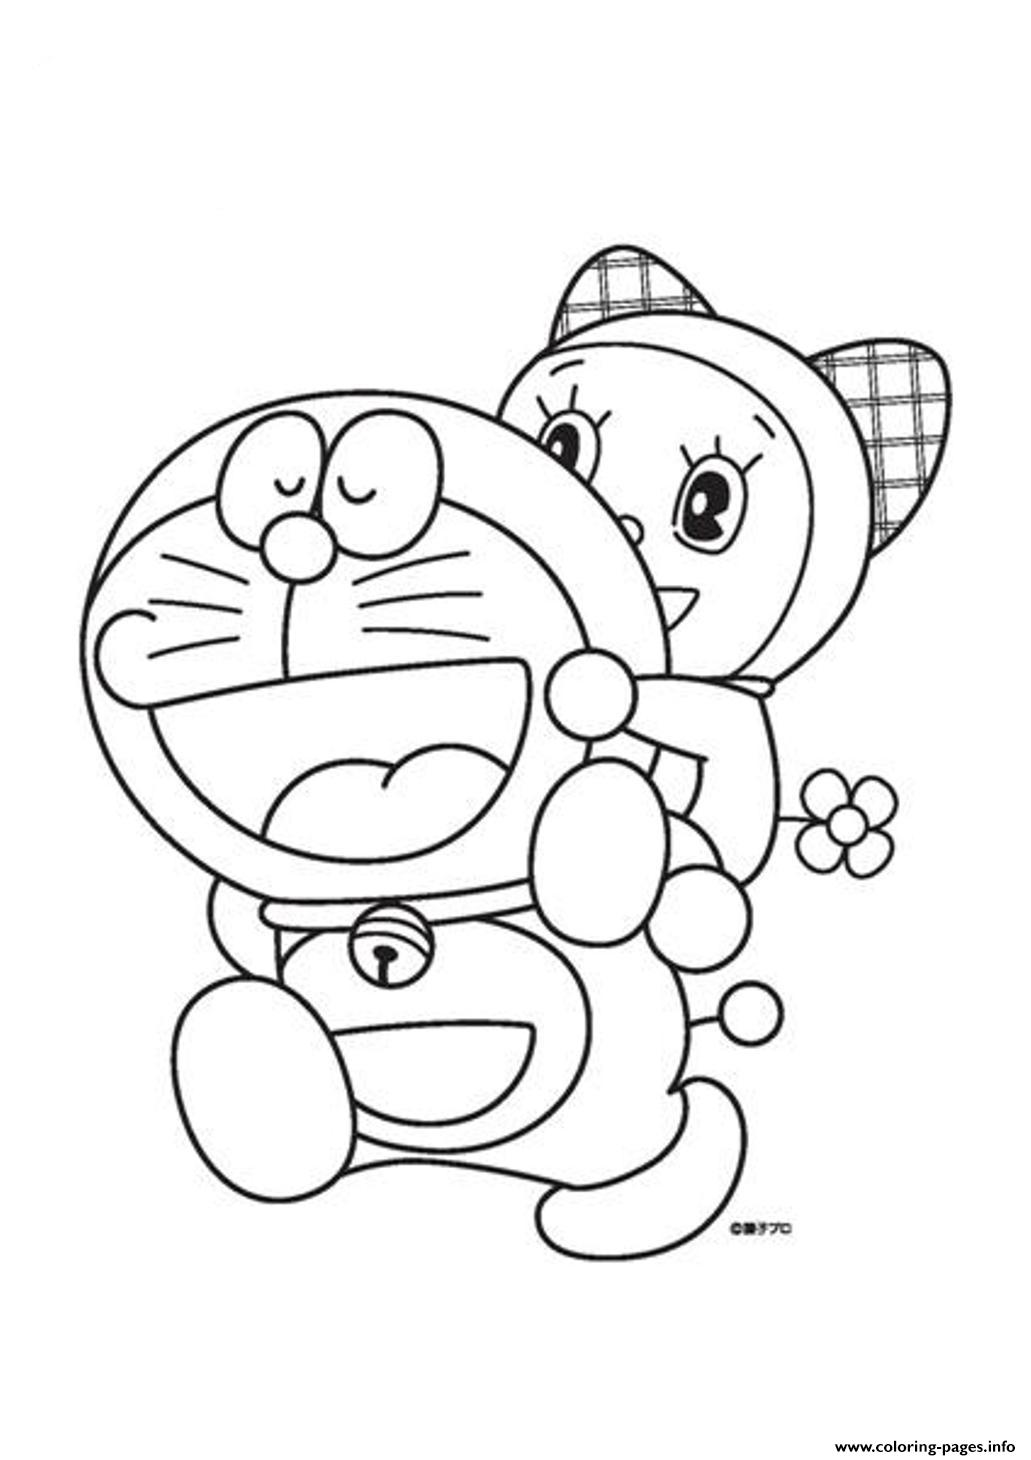 doraemon printable coloring pages doraemon coloring pages to download and print for free printable pages doraemon coloring